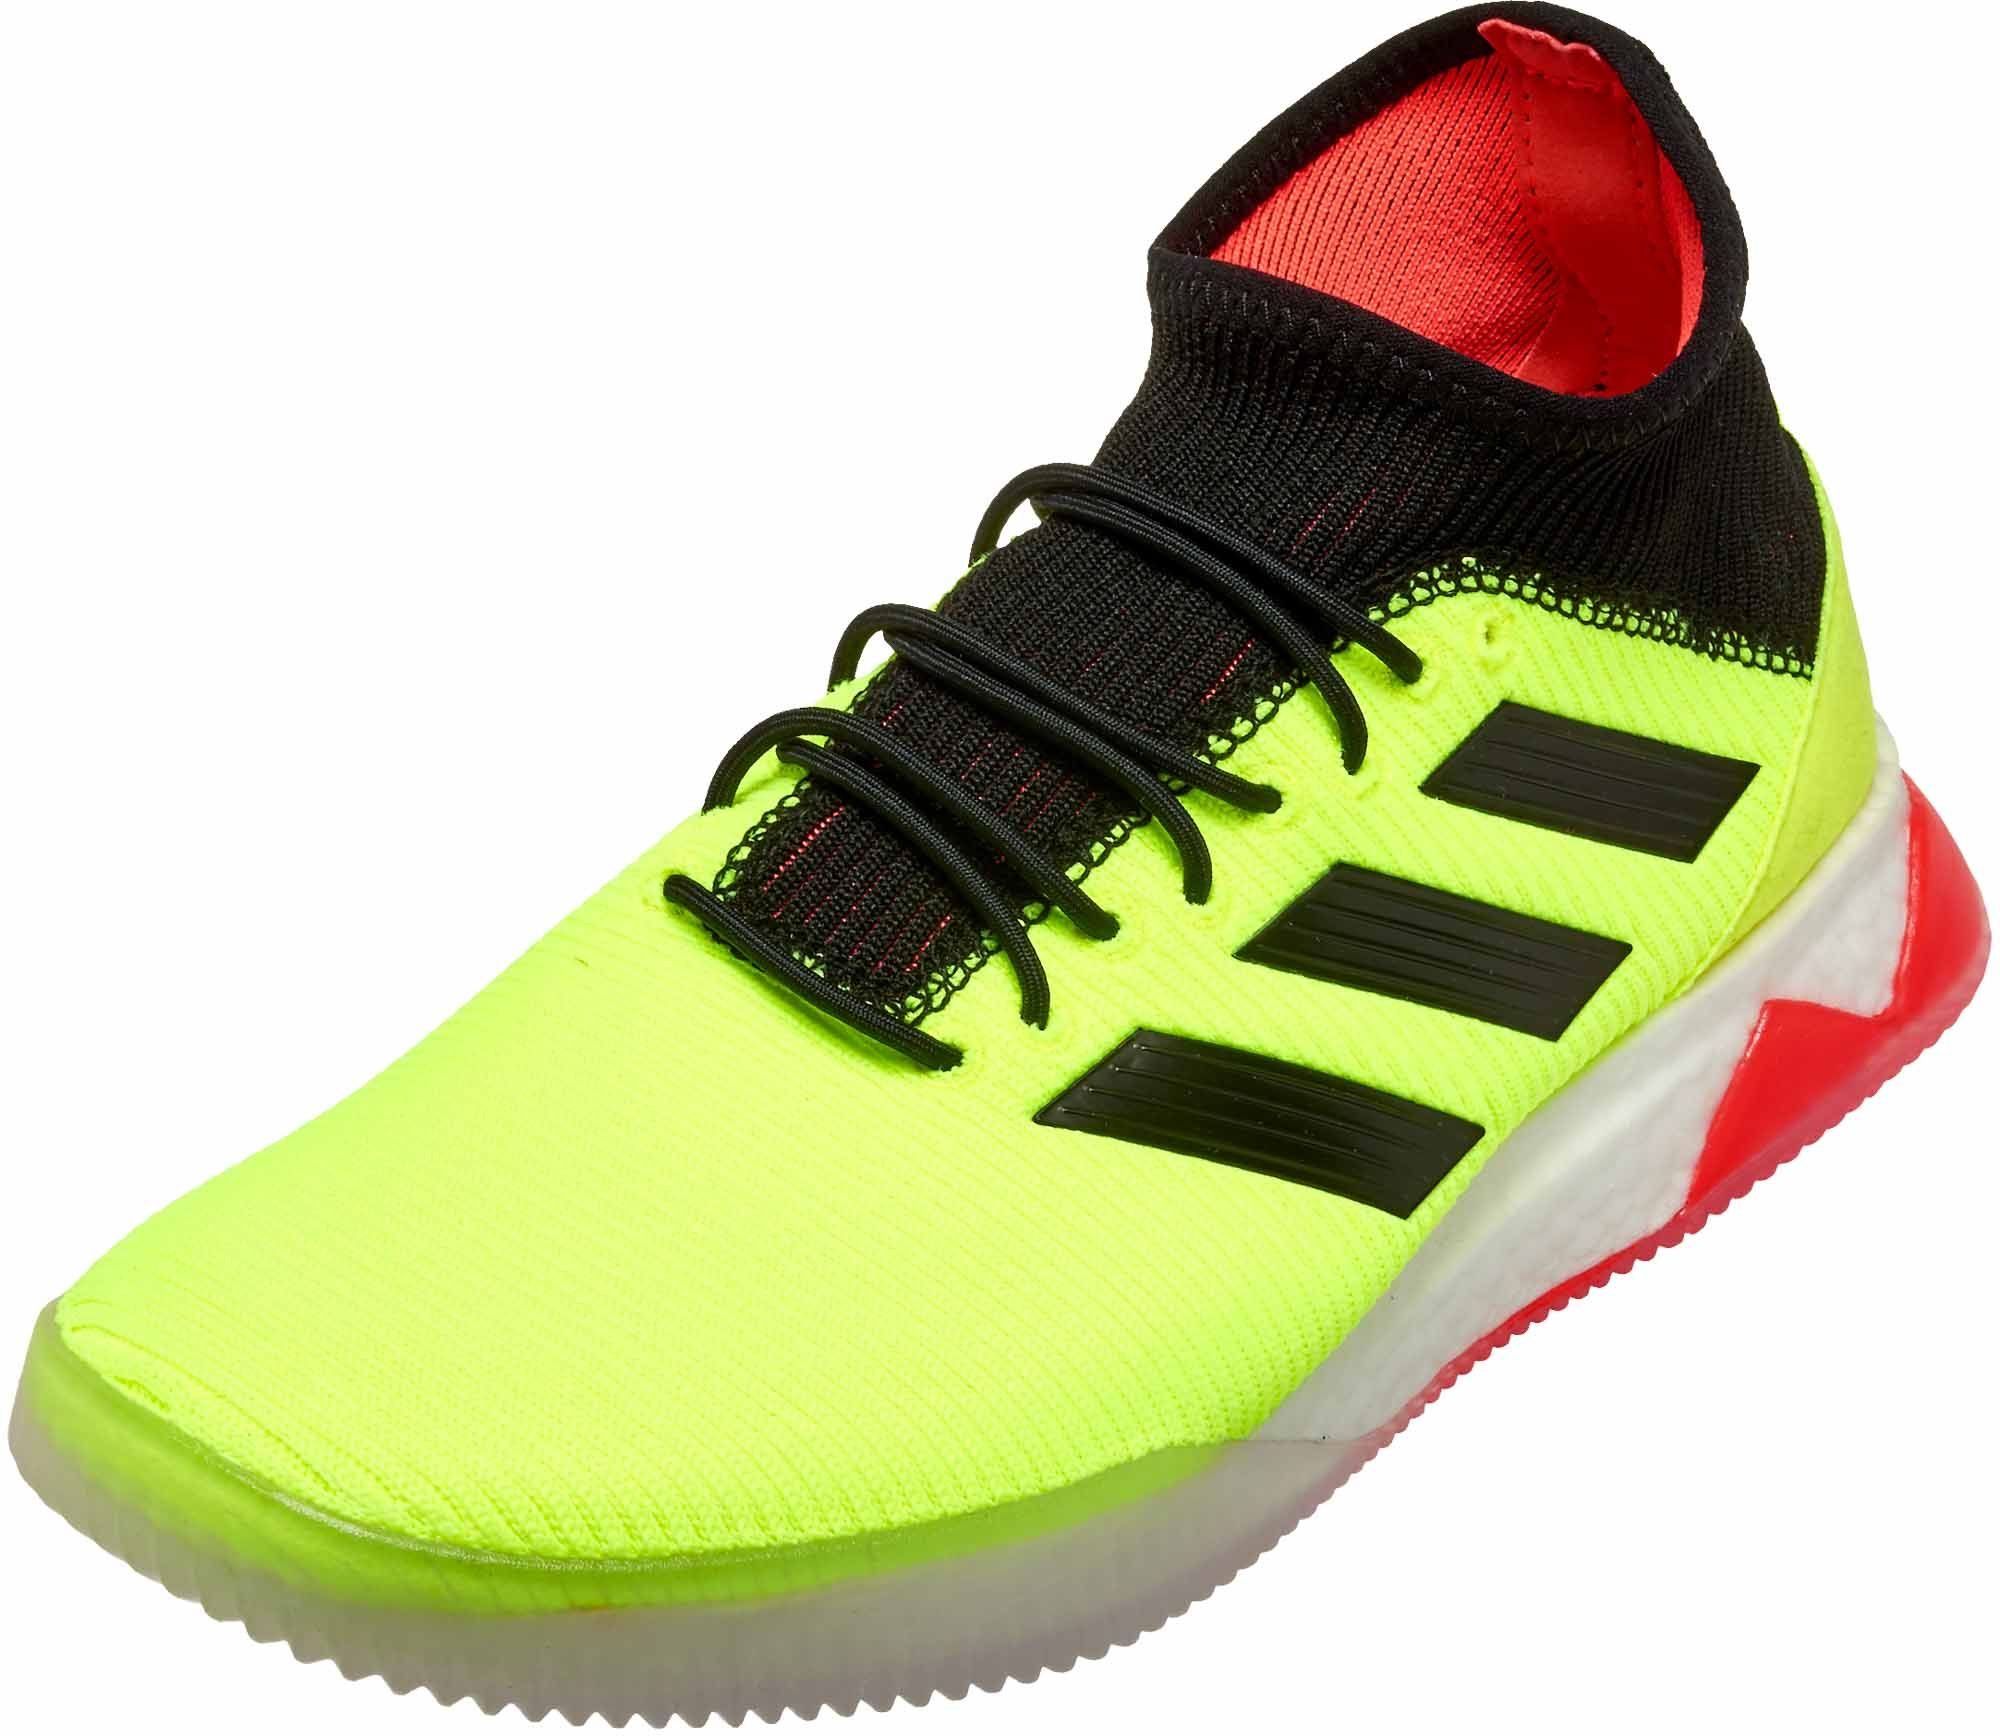 4862abee6b1 Energy Mode pack adidas Predator Tango 18.1 trainers. Buy them from  www.soccerpro.com